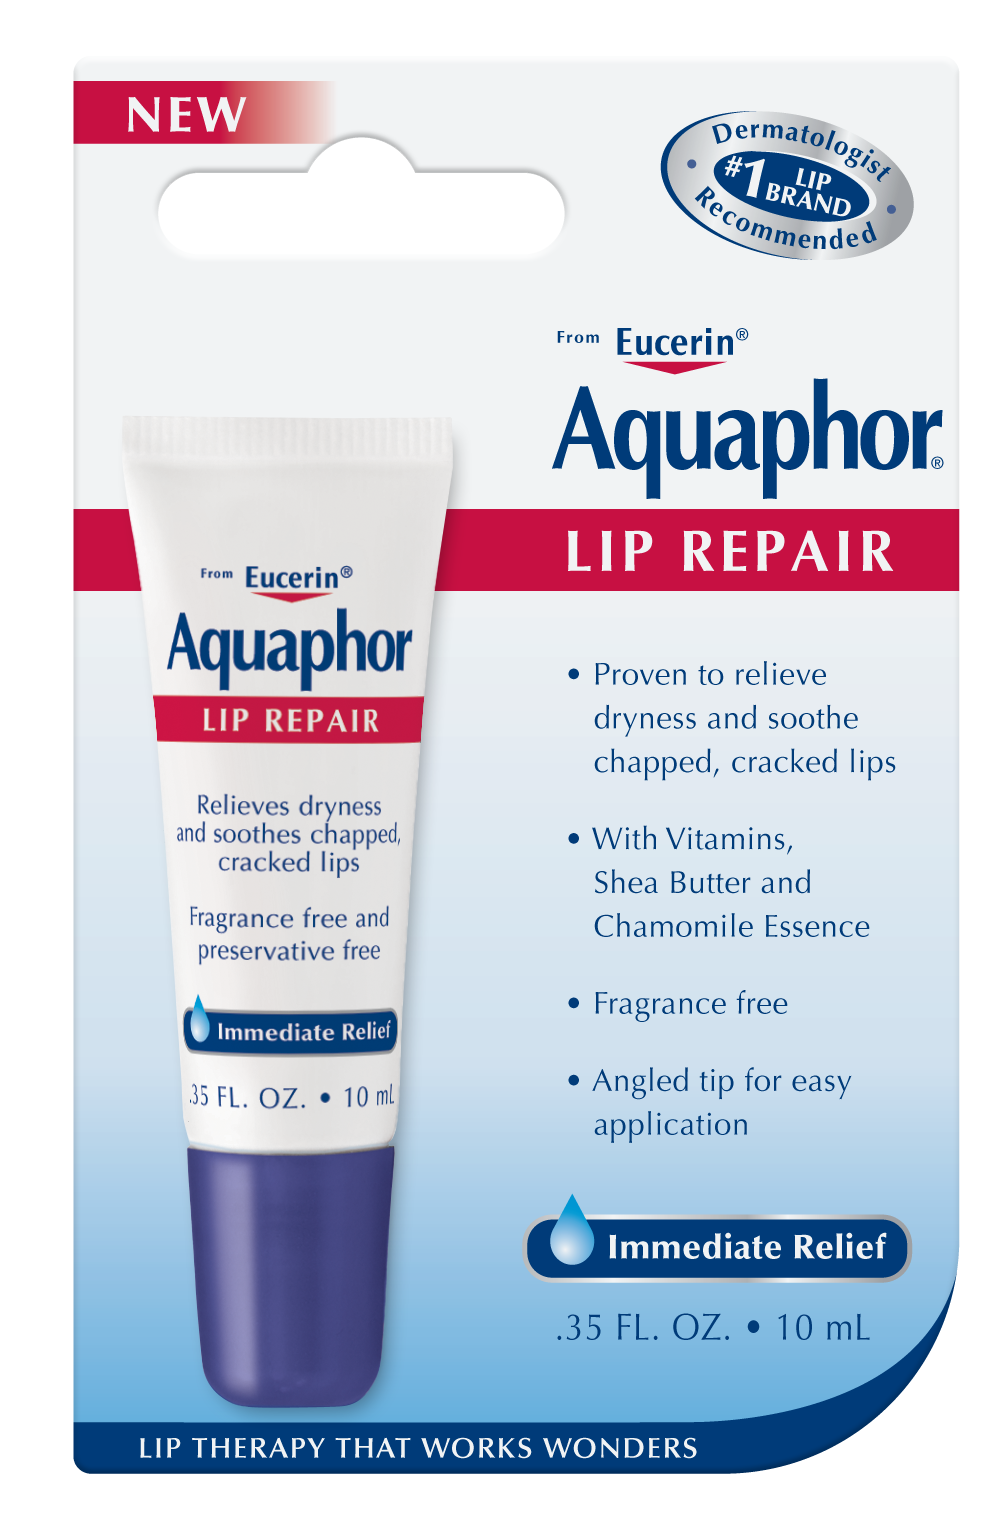 1. To prep lips, apply lip balm or use a cotton swab to coat lips with Aquaphor.  Let the moisturizer sit for 5 minutes before moving onto the next step. Hydrating the lips will help to loosen up any dead or dry skin, which you'll be removing in the next step.